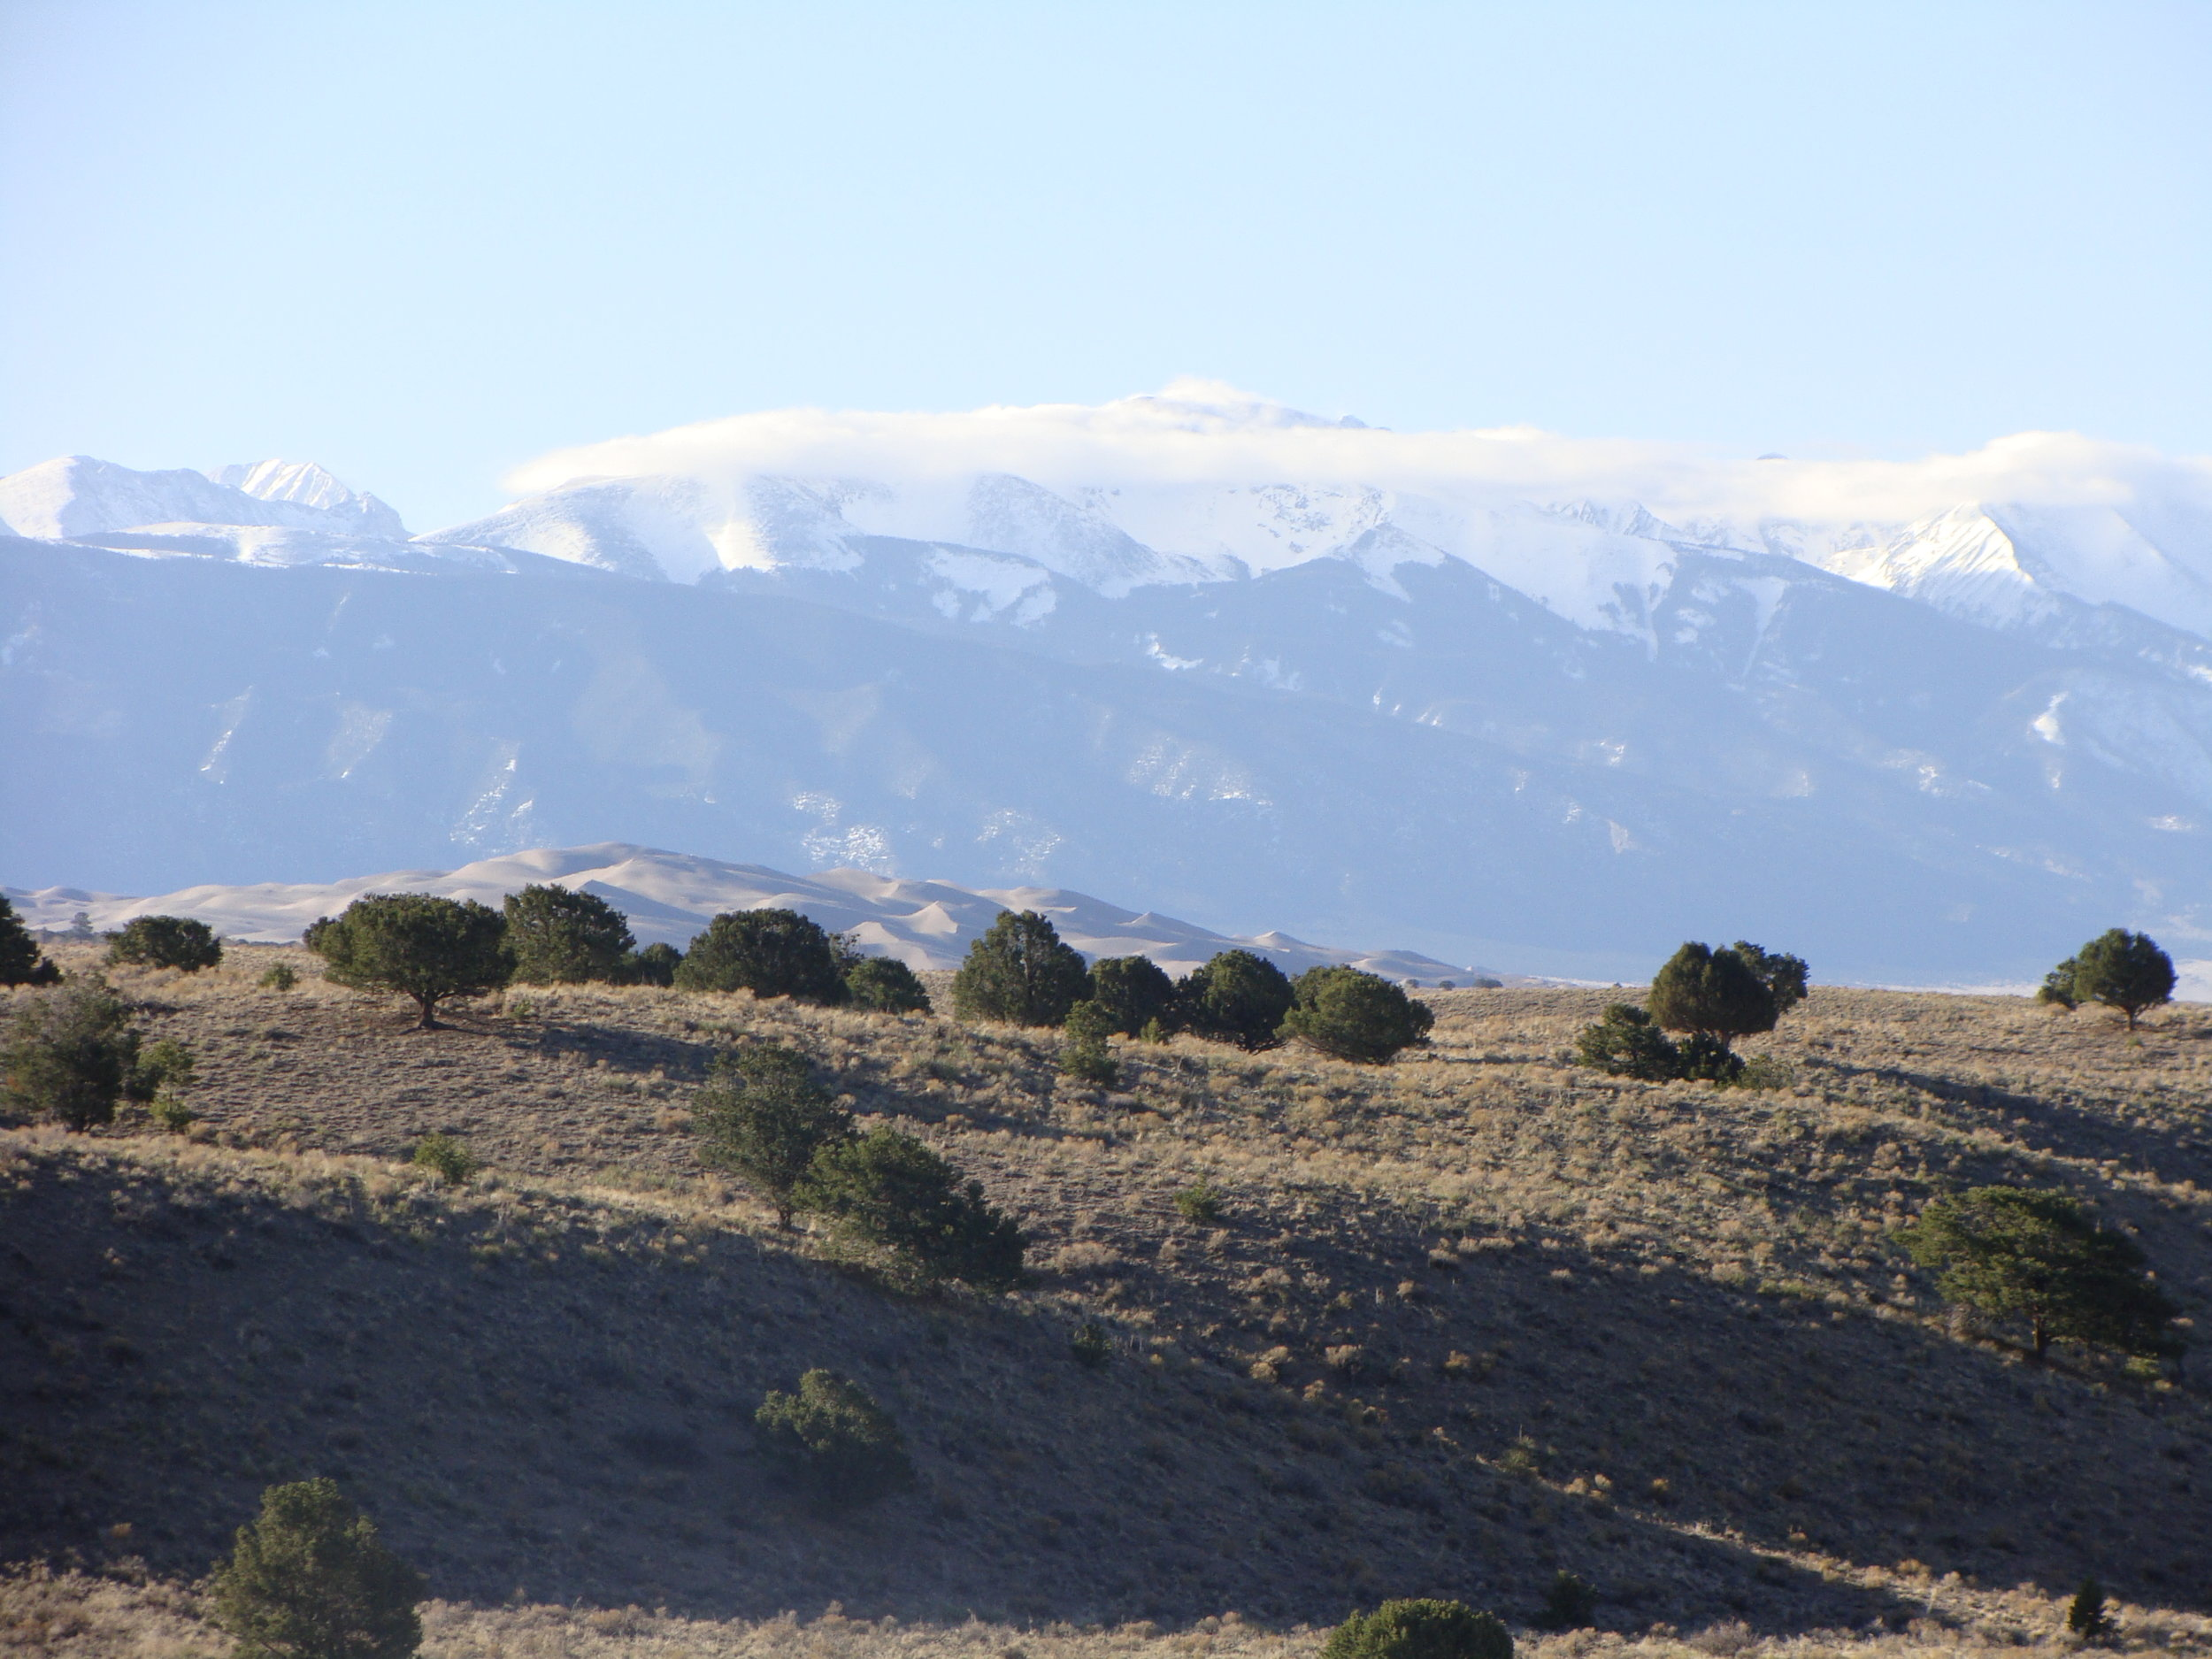 Dunes at the Great Sand Dunes National Park & Blanca Peak greet me this day!